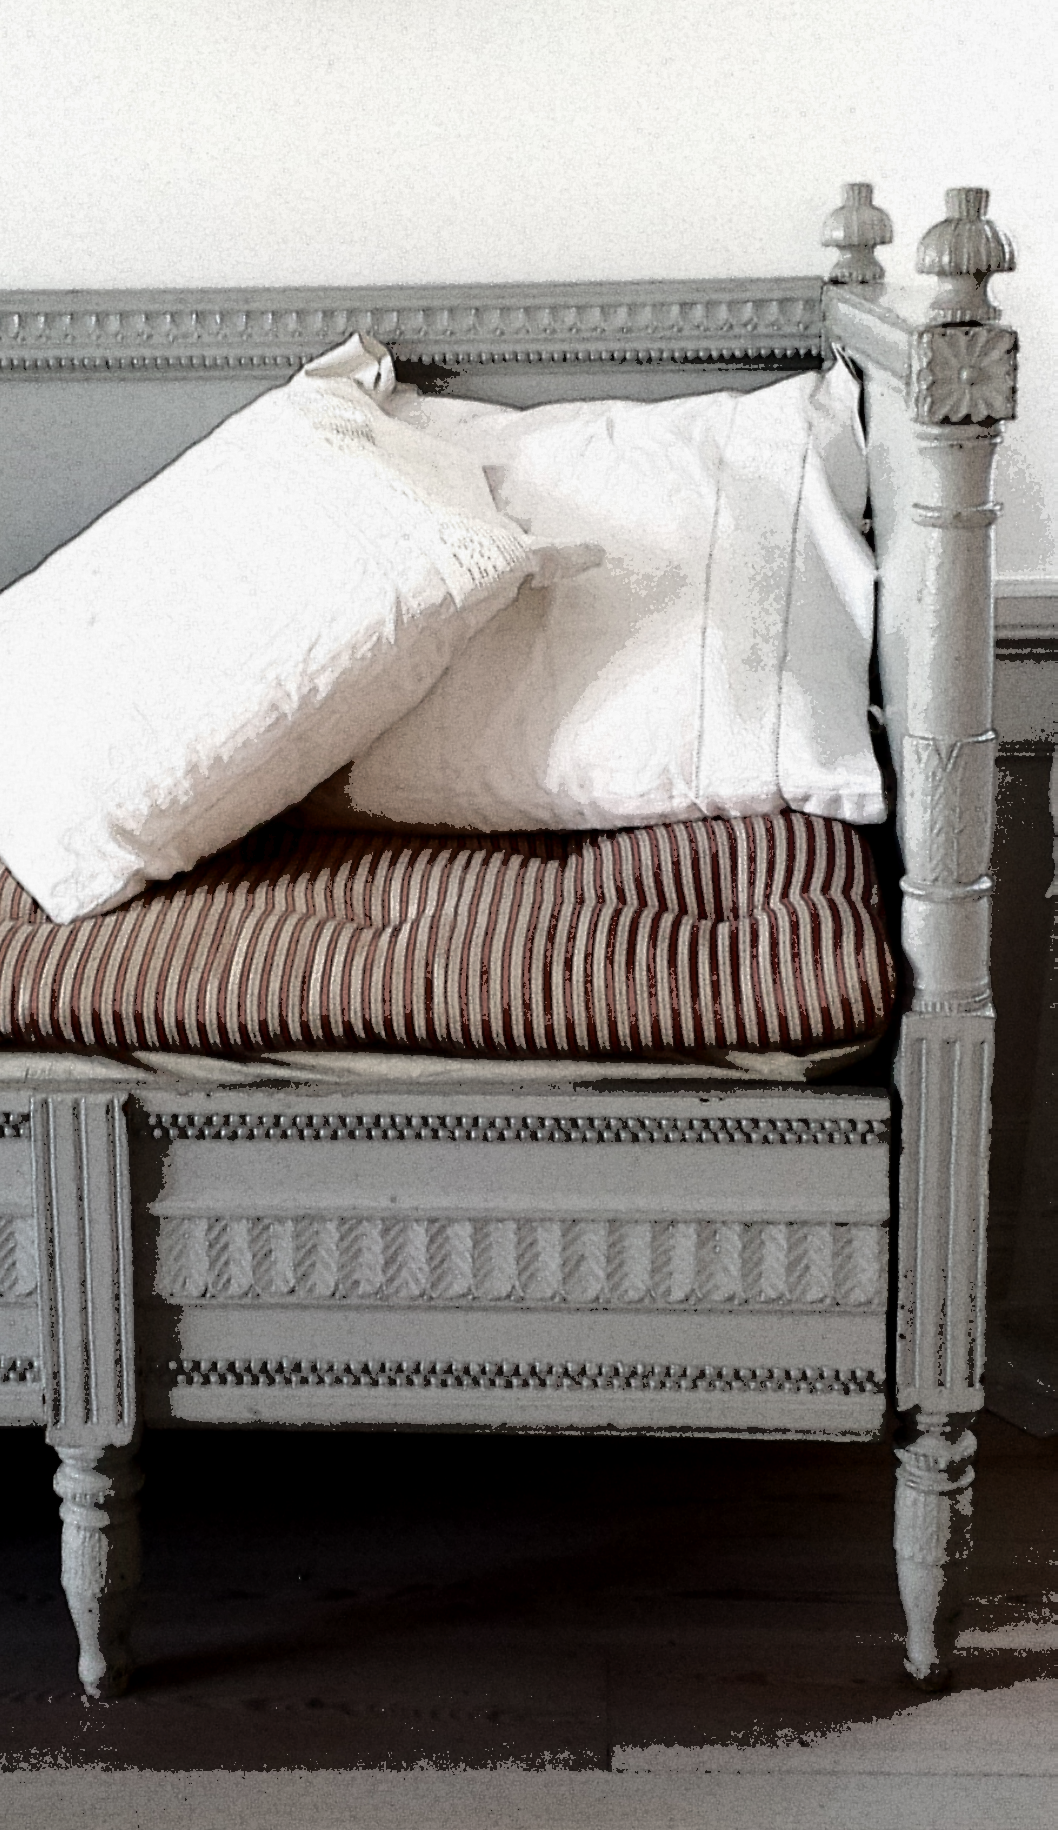 gustavian bed couch la petite maison de campagne shabby franz sischer landhausstil und. Black Bedroom Furniture Sets. Home Design Ideas